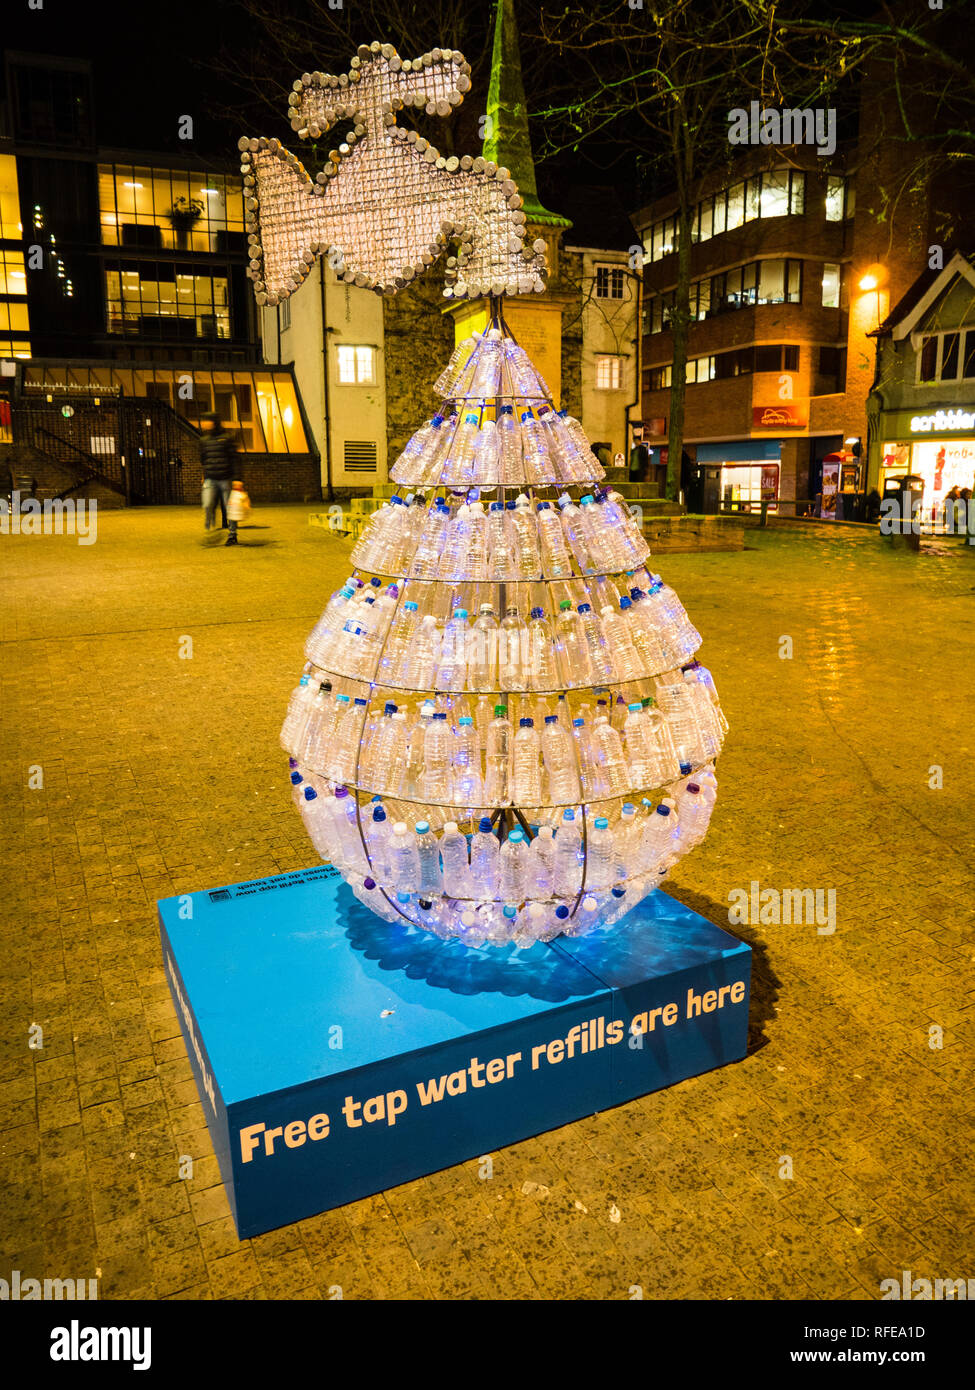 Sculpture on use of Plastic Water Bottles, Oxford, Oxfordshire, England, UK. - Stock Image